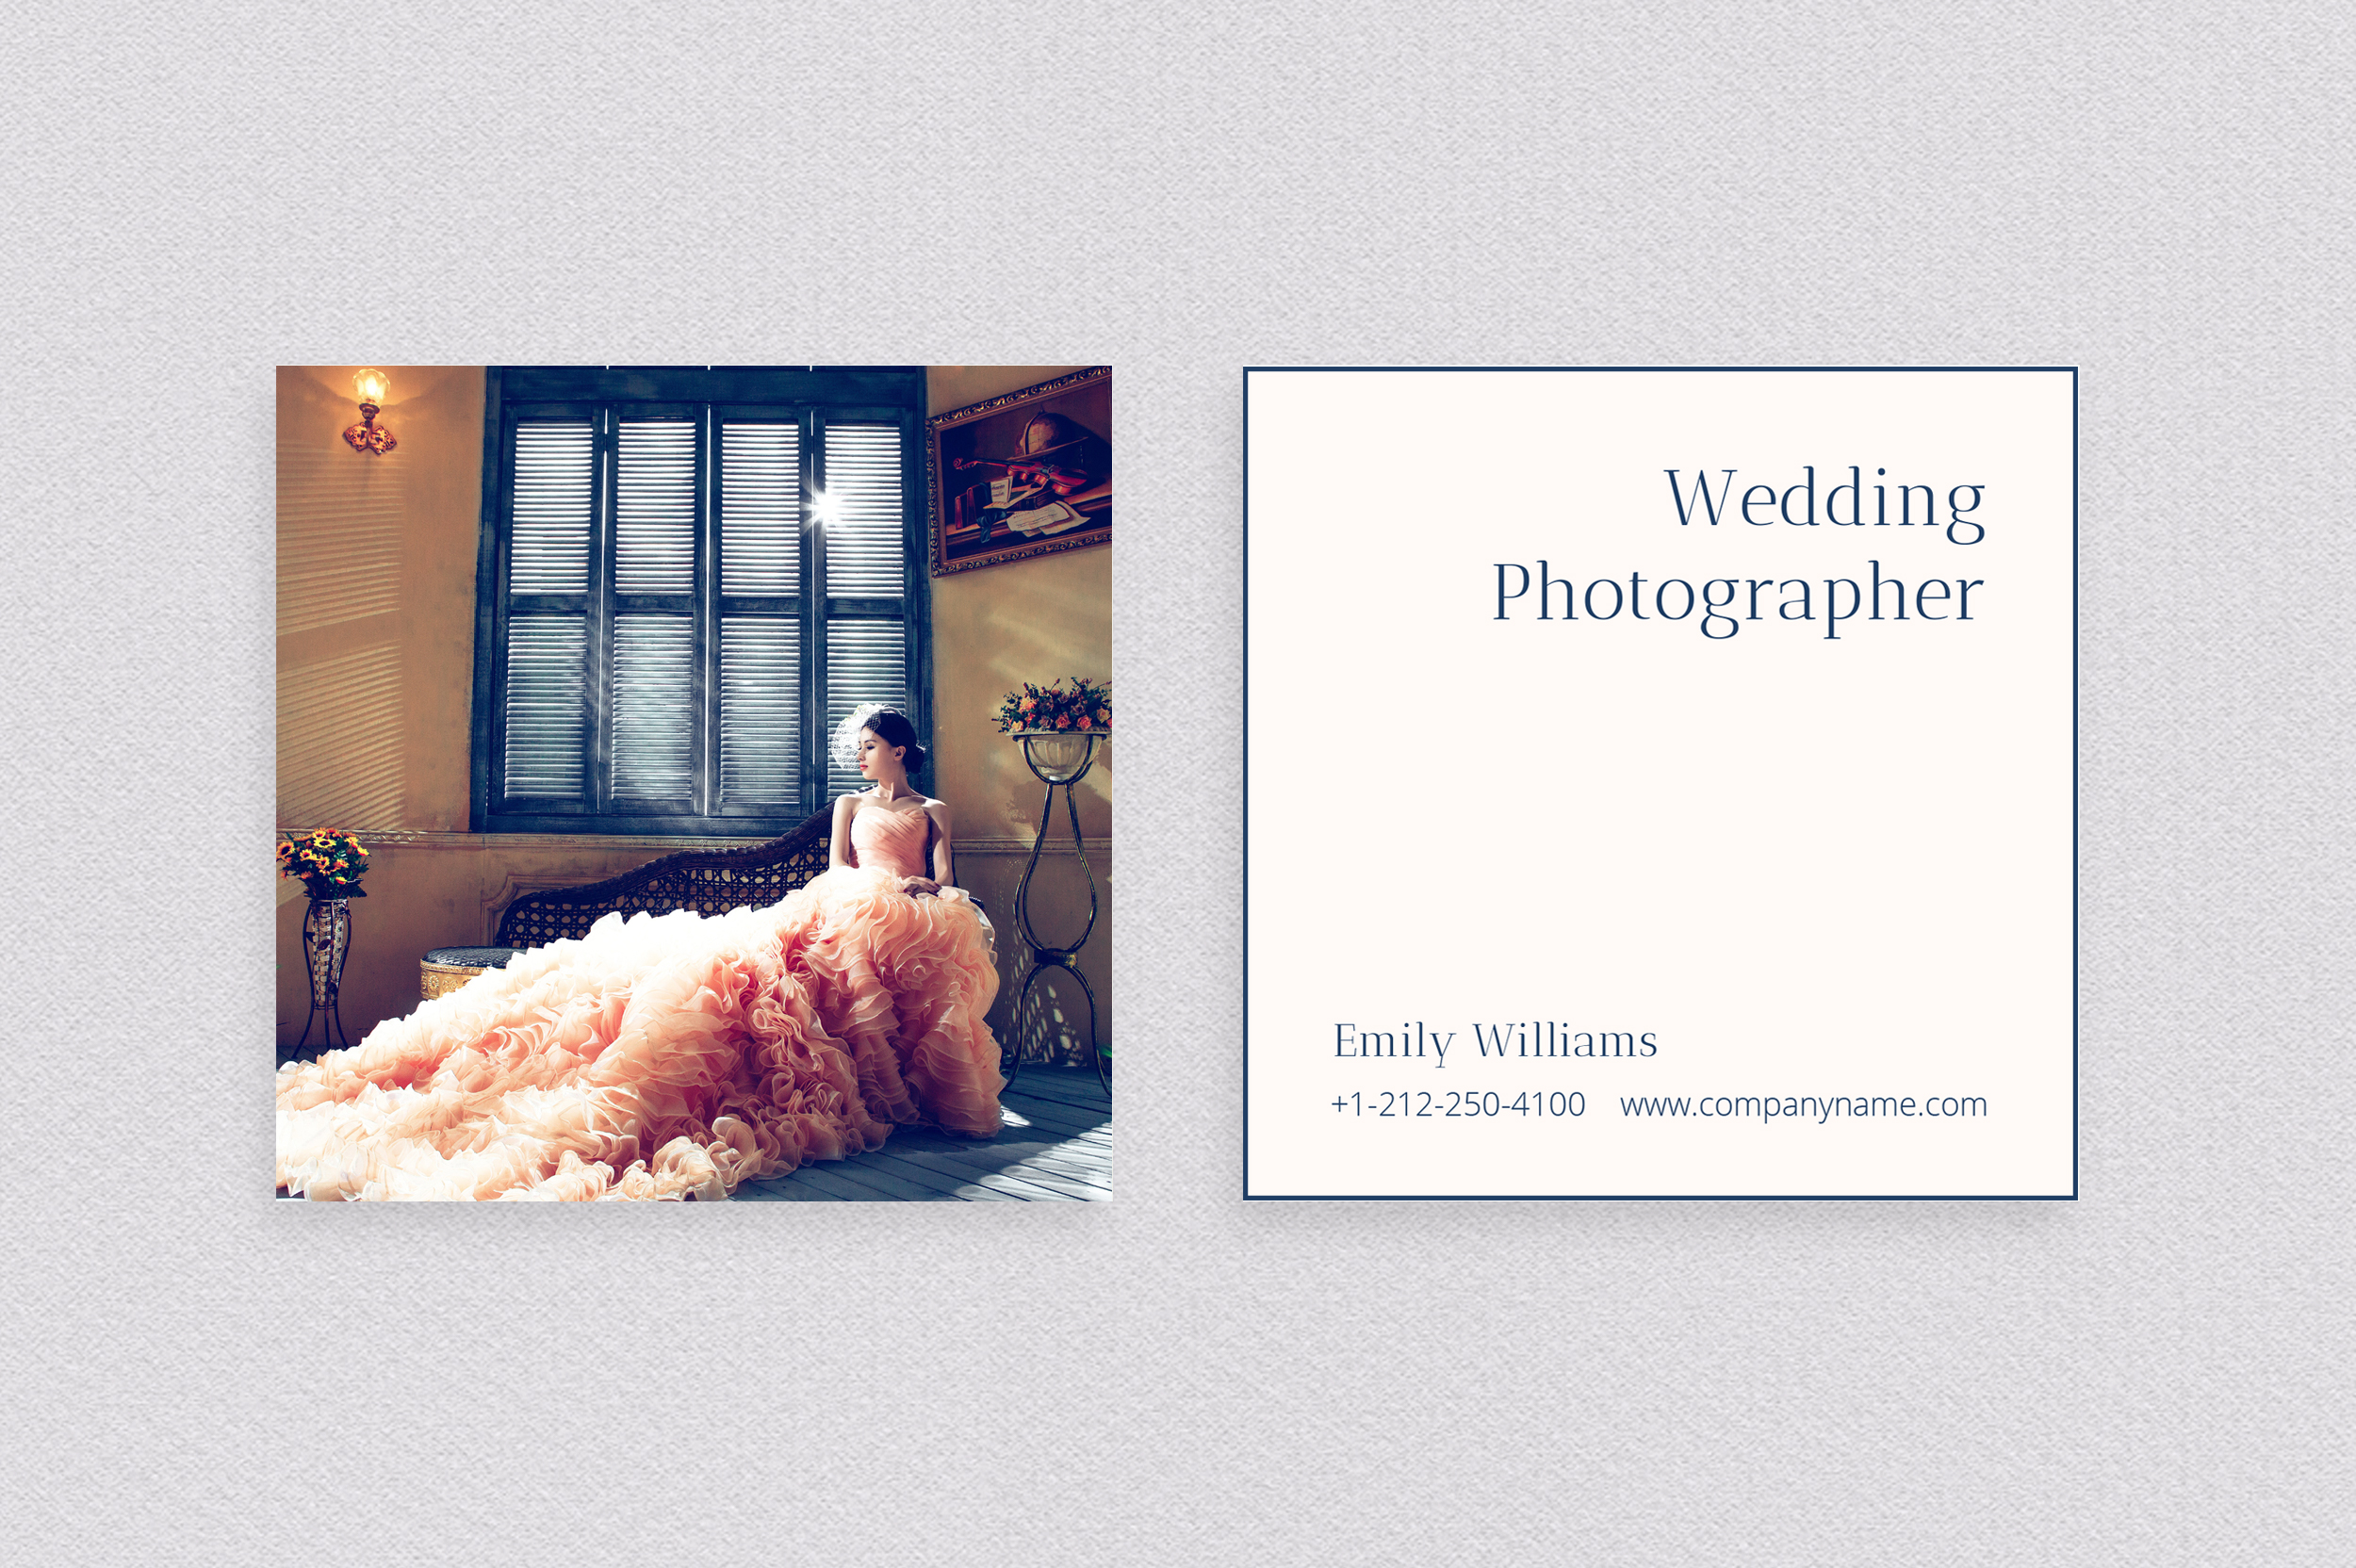 Wedding Photography Business Card example image 3